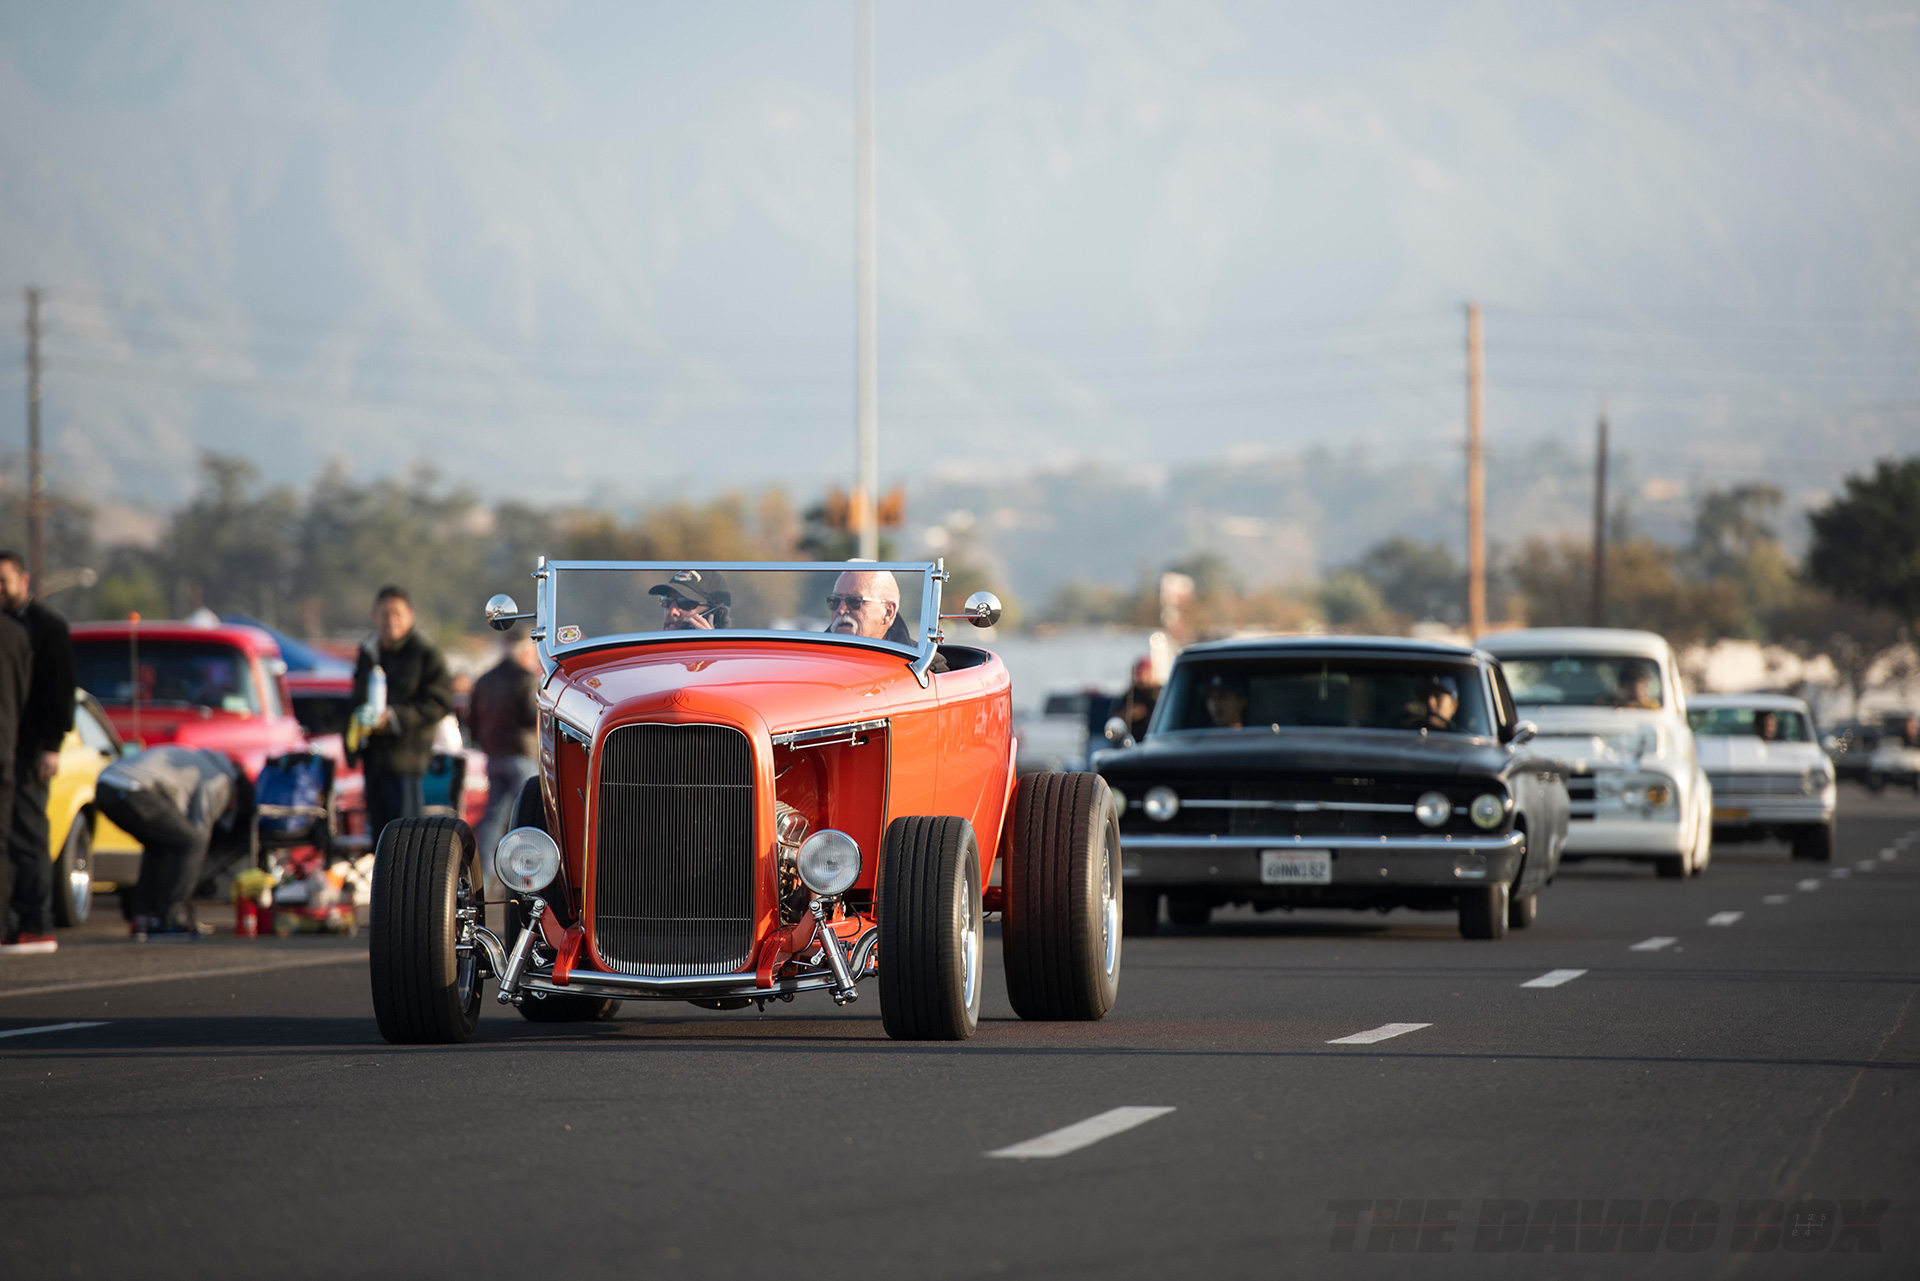 a parade of classic cars cruise down the road at the In-N-Out Hot Rod 70th Celebration